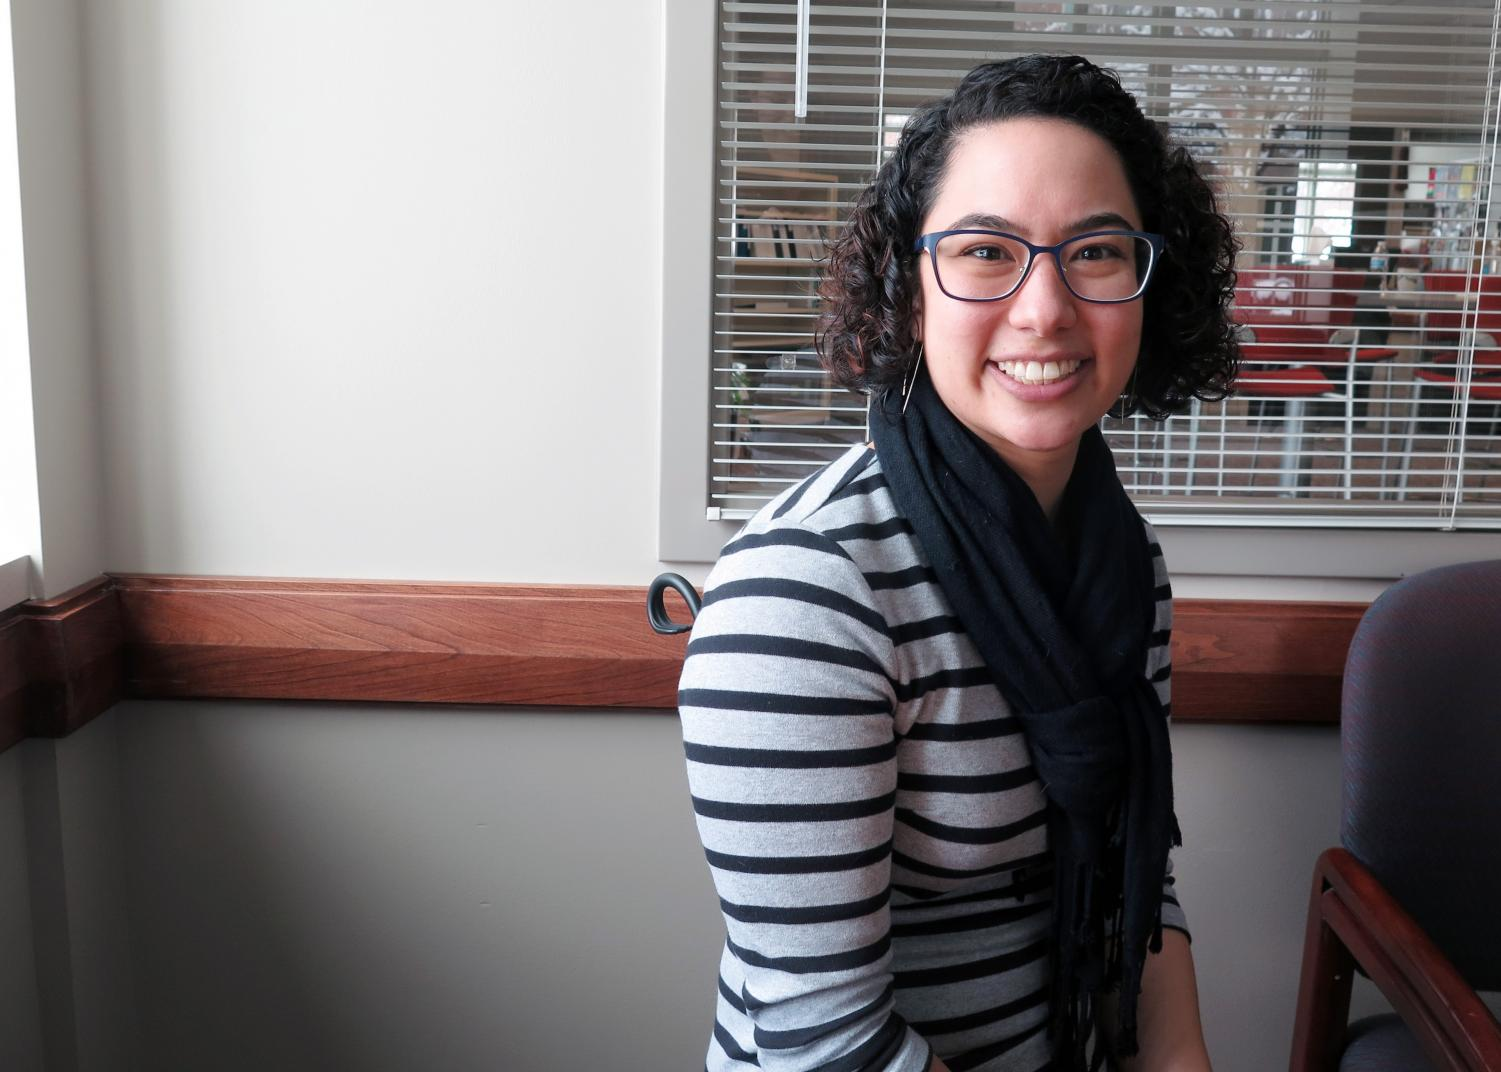 Abby Chien, of the Diversity and Equity Center, sits in her new office as she takes action in her position as Director.